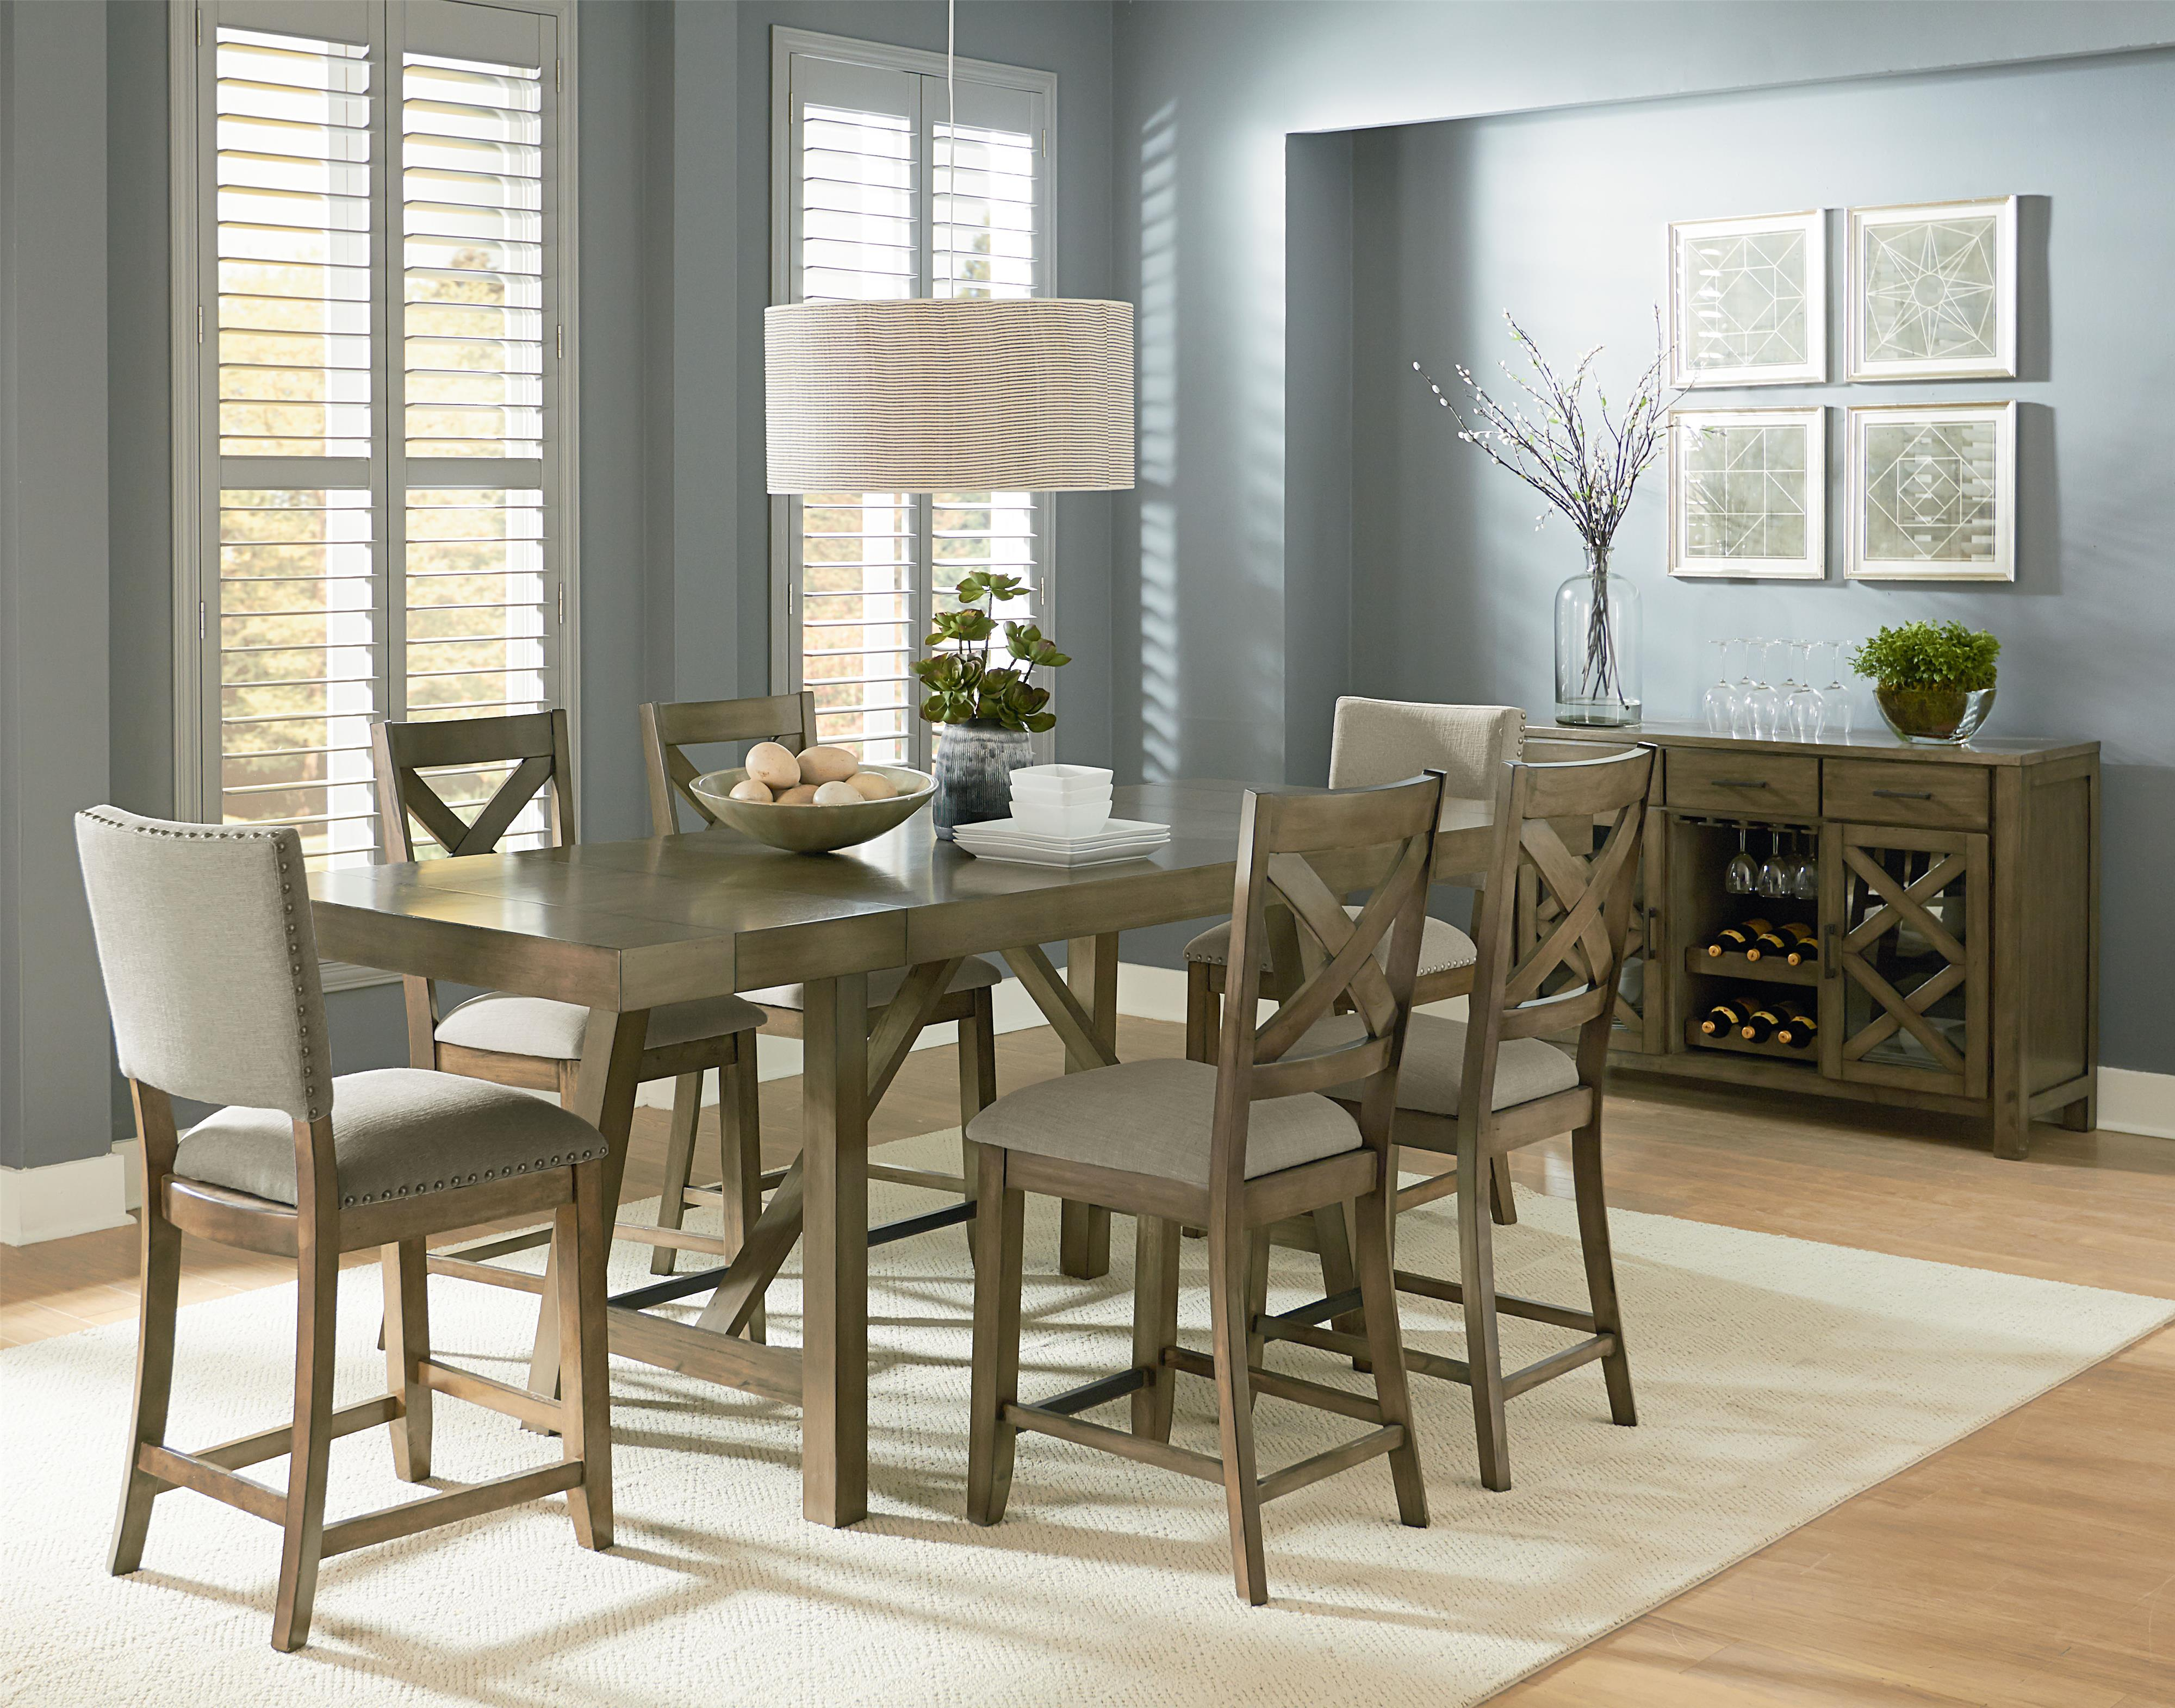 Inspiring Standard Height For A Dining Room Table Contemporary ...